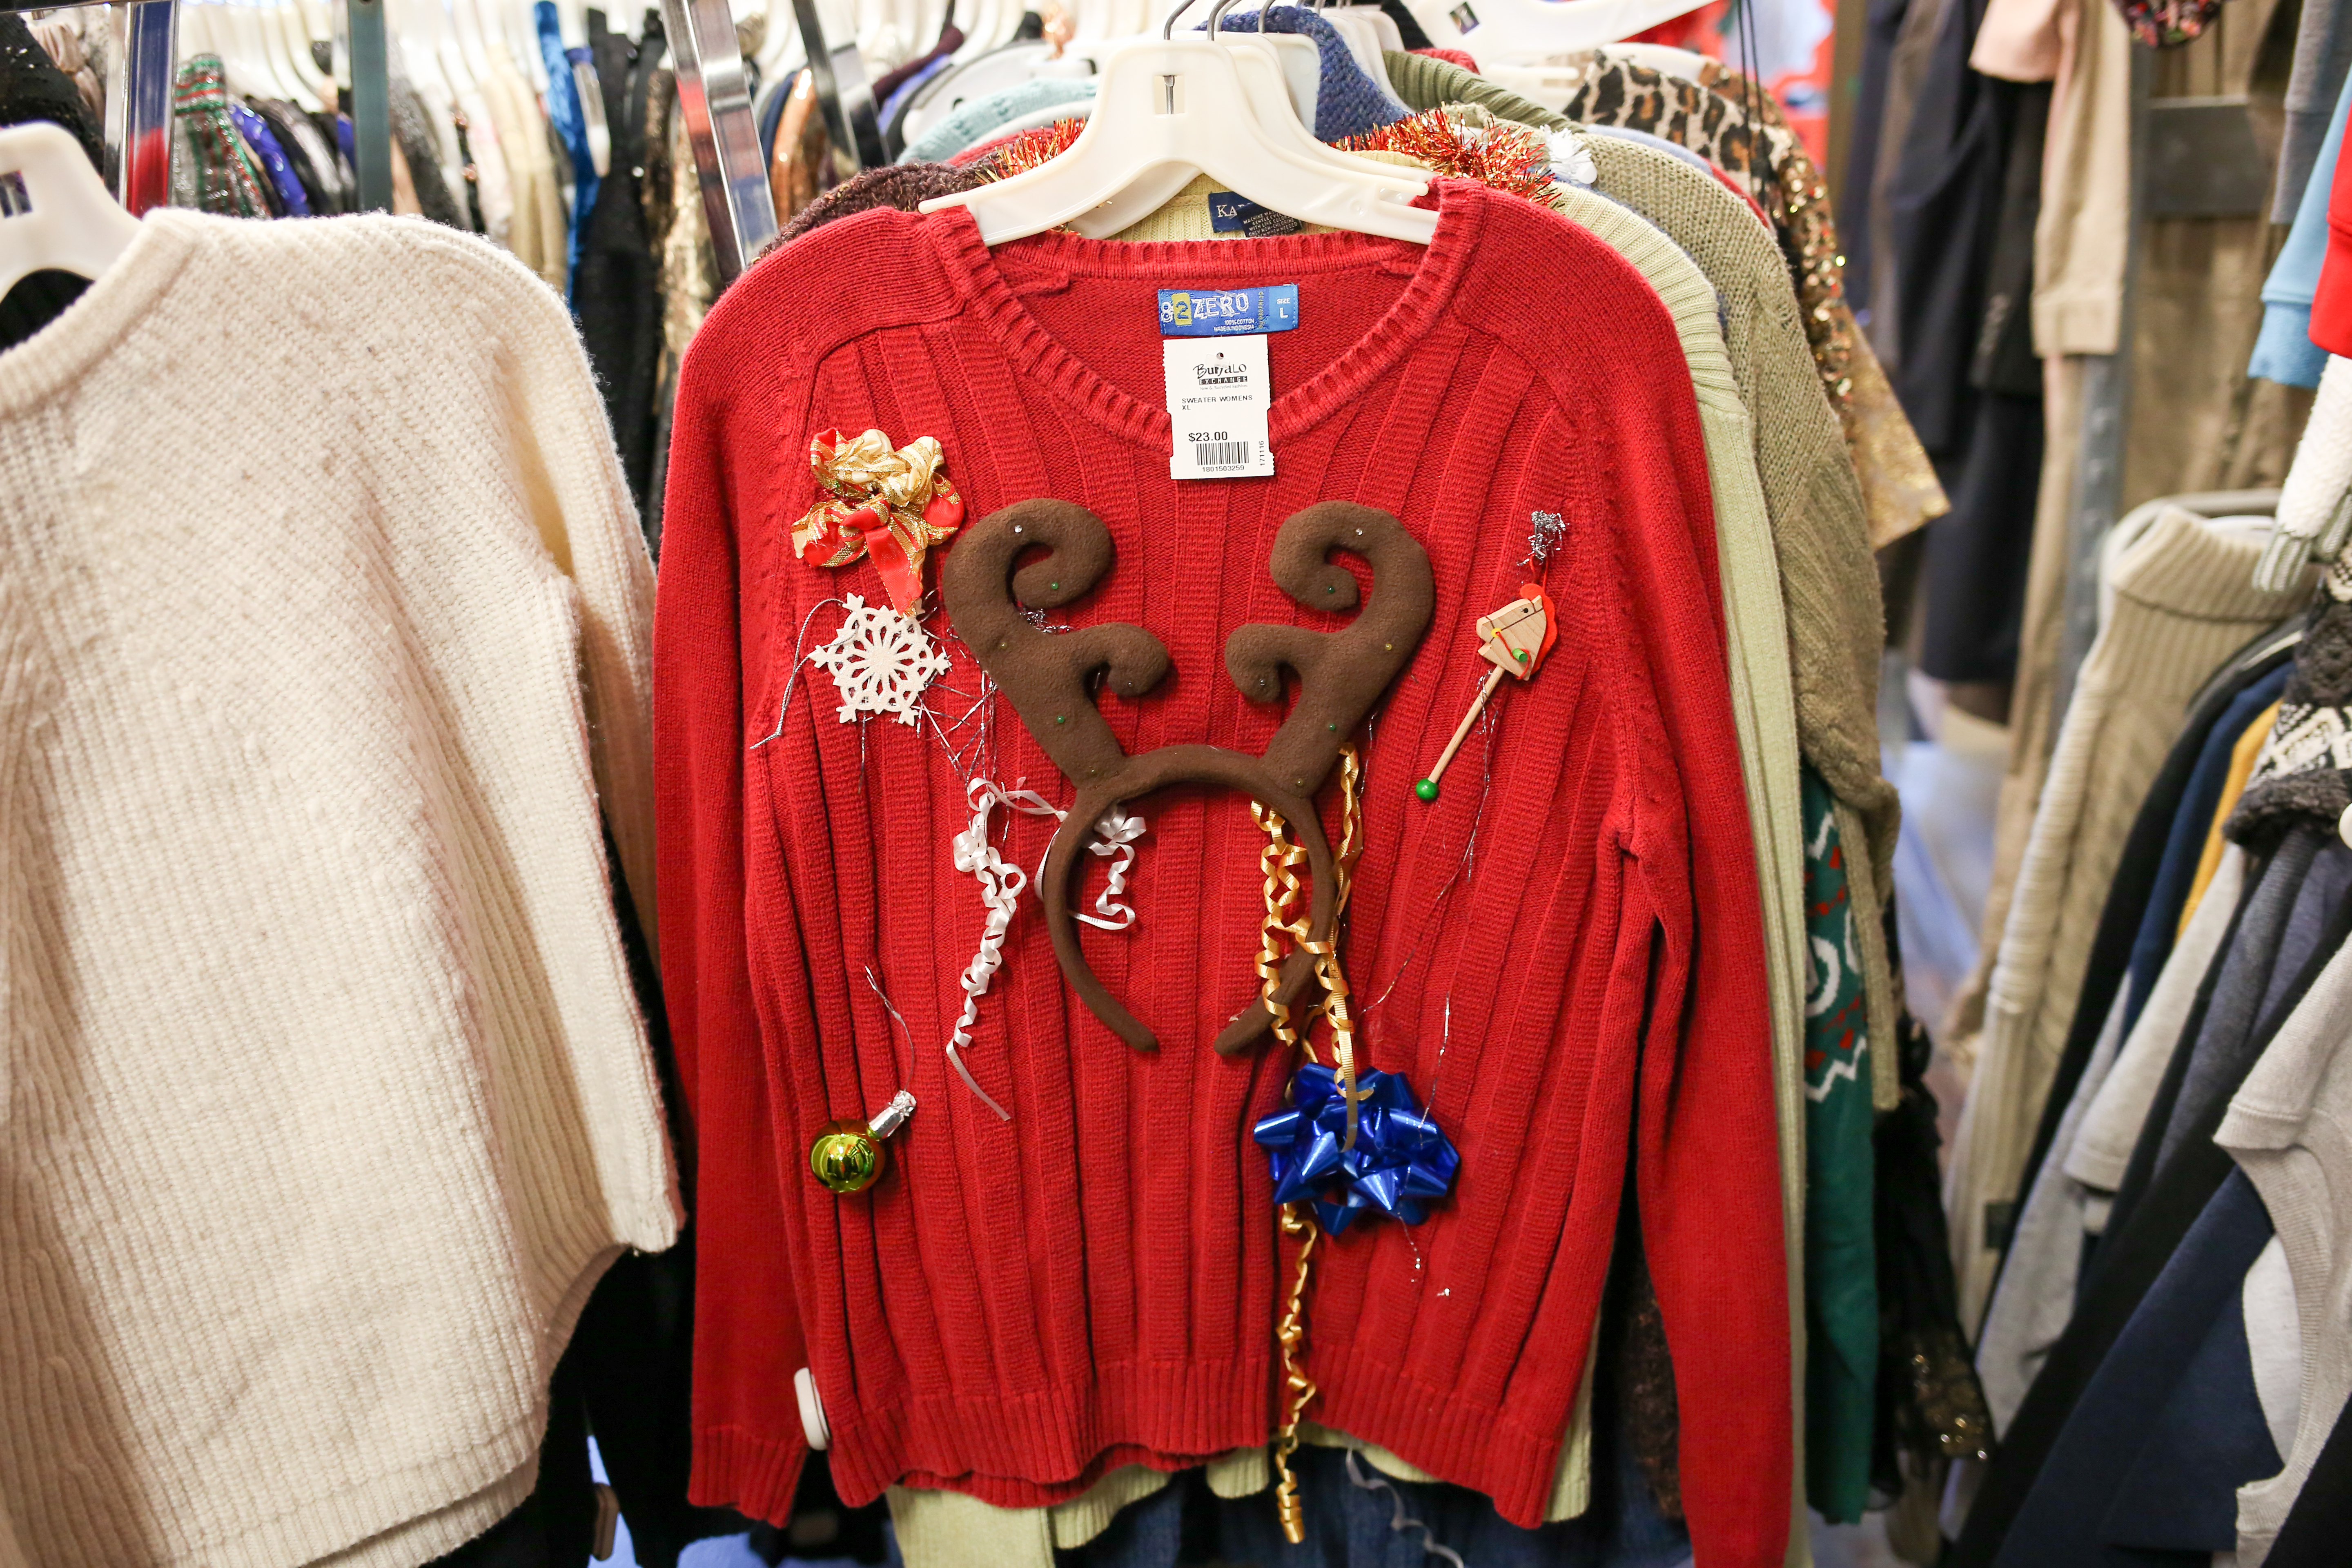 Buffalo Exchange,{ }1318 14th St NW - $23 (Amanda Andrade-Rhoades/DC Refined)